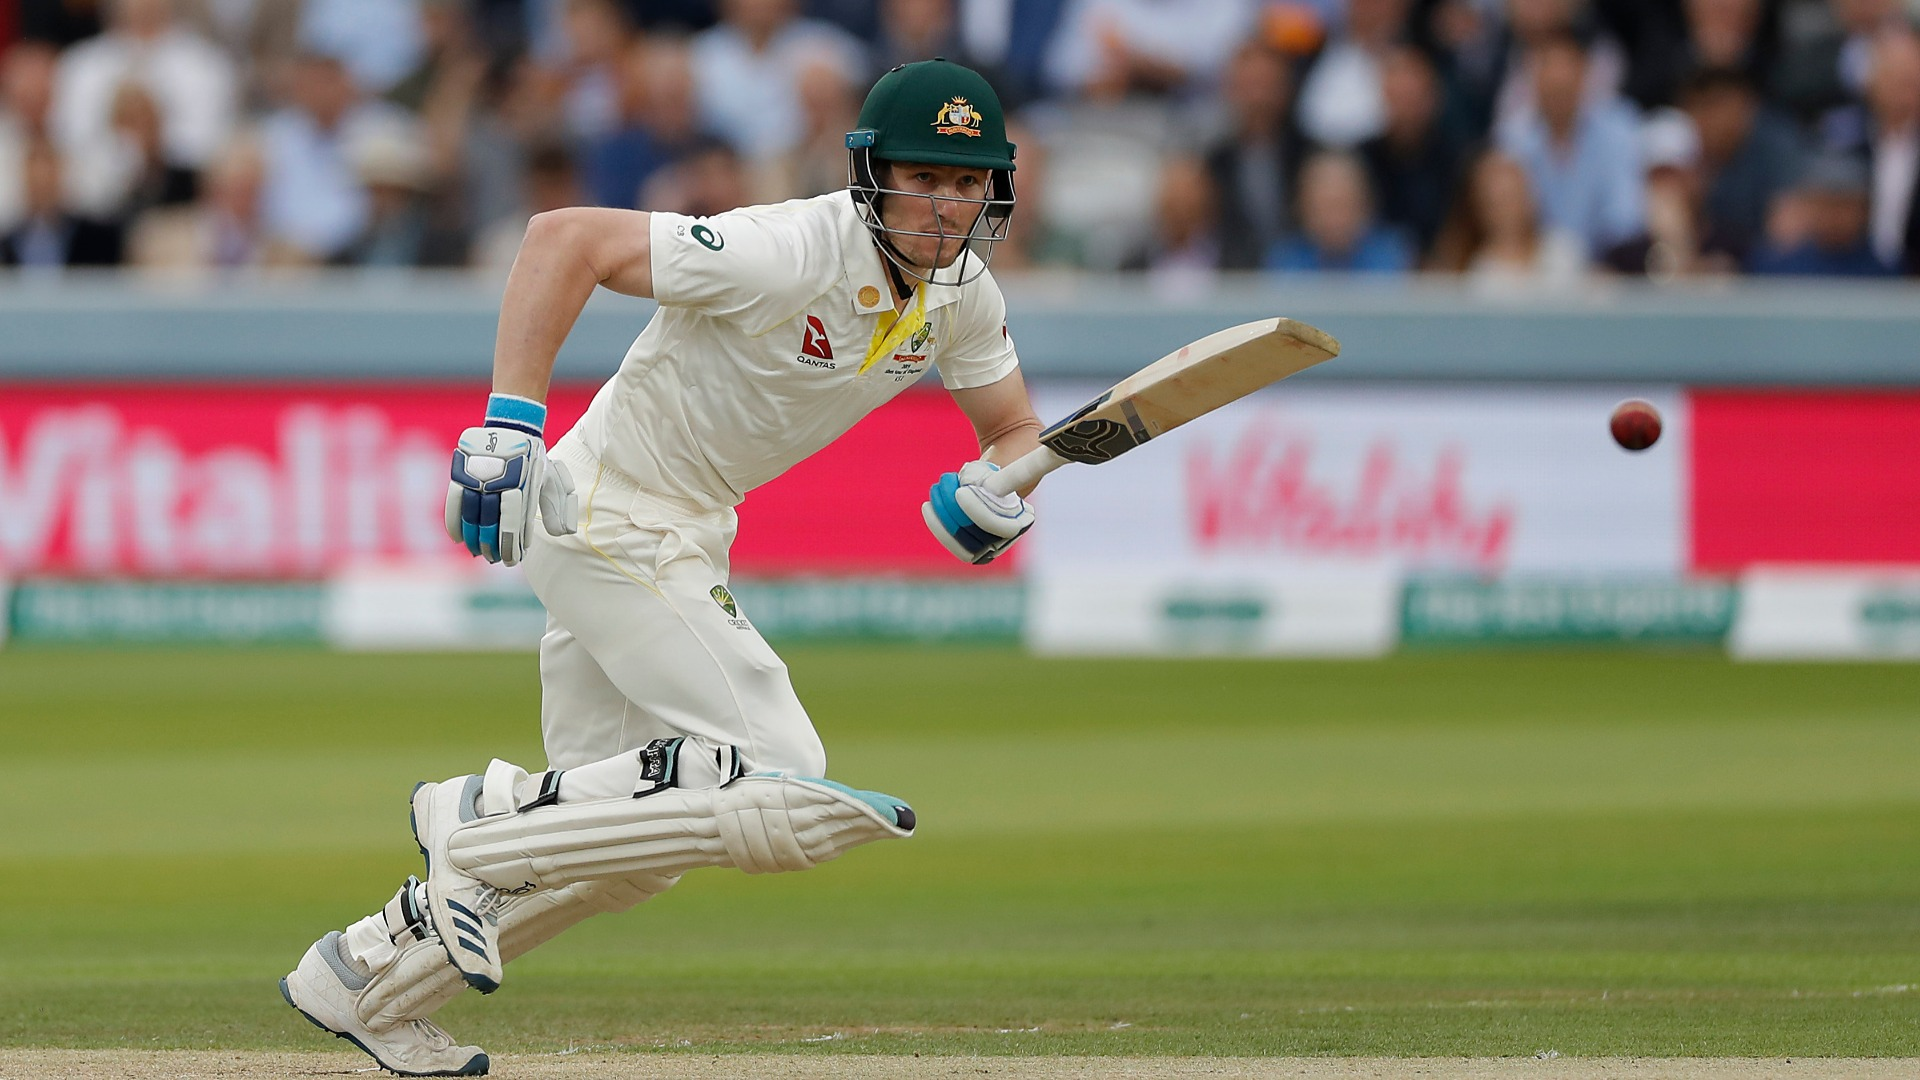 Ashes 2019: Steve Waugh defends Cameron Bancroft as Australia opener's woes continue | Sporting News Australia